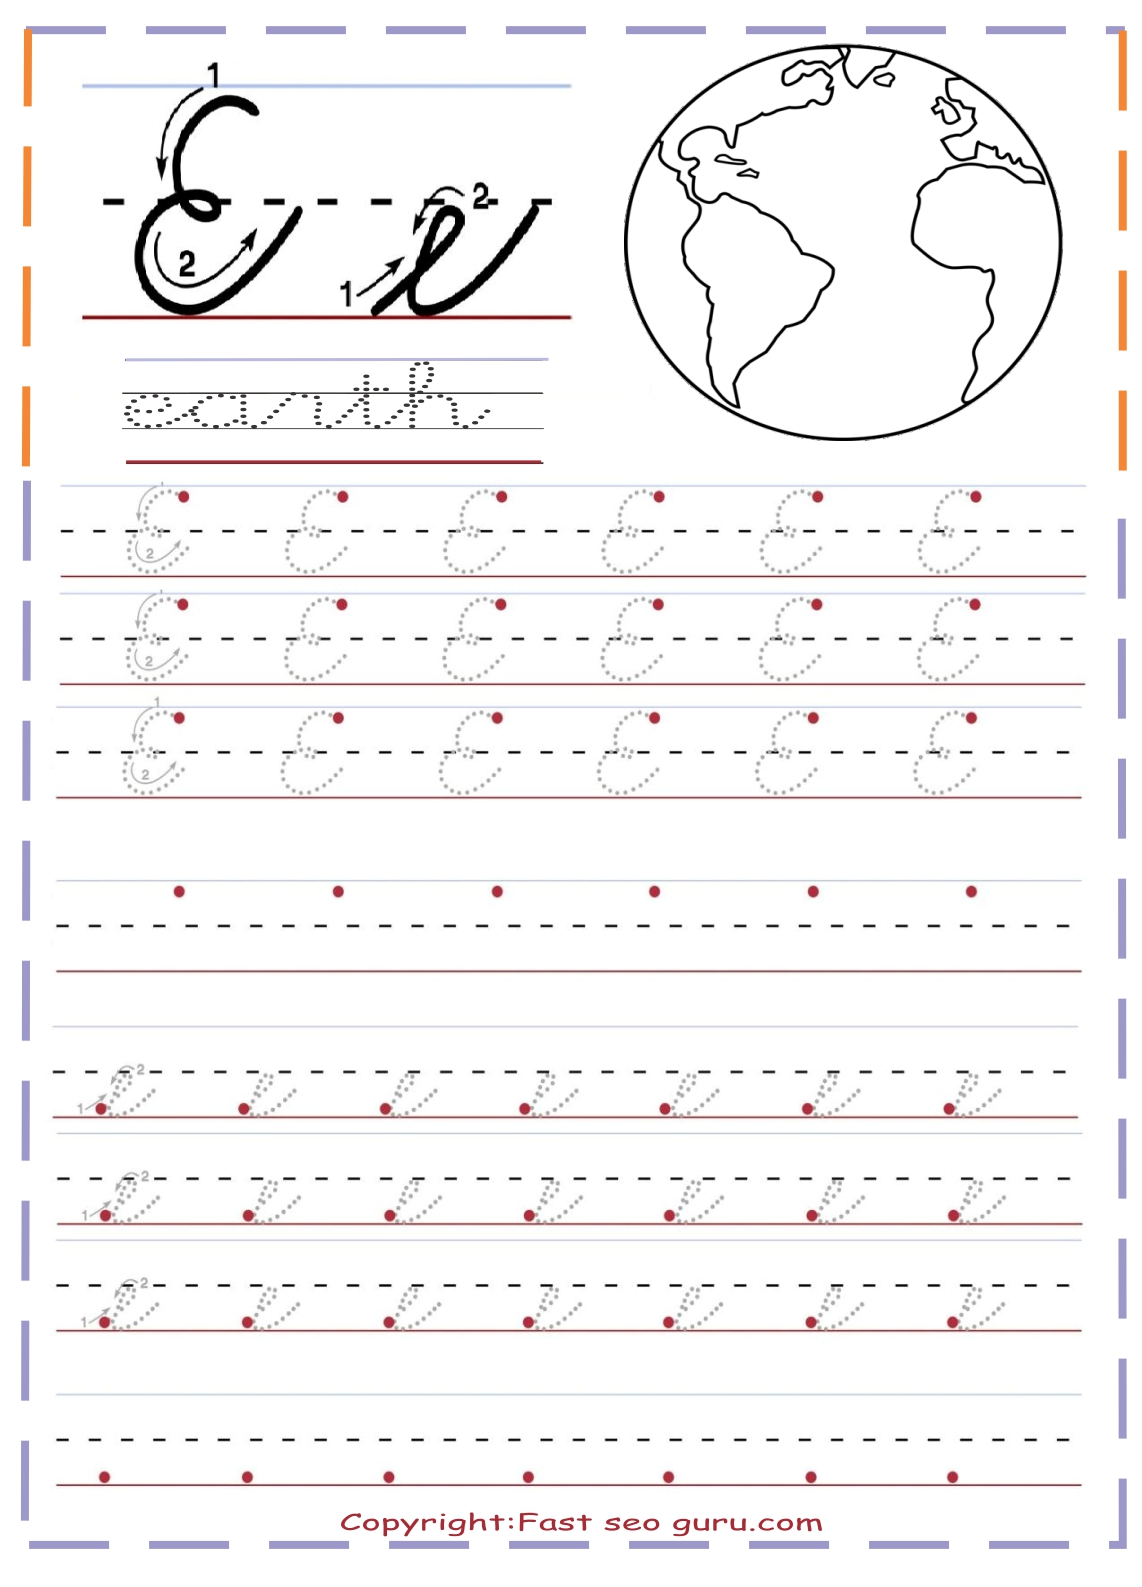 Cursive Handwriting Tracing Sheets For Practice Letter E